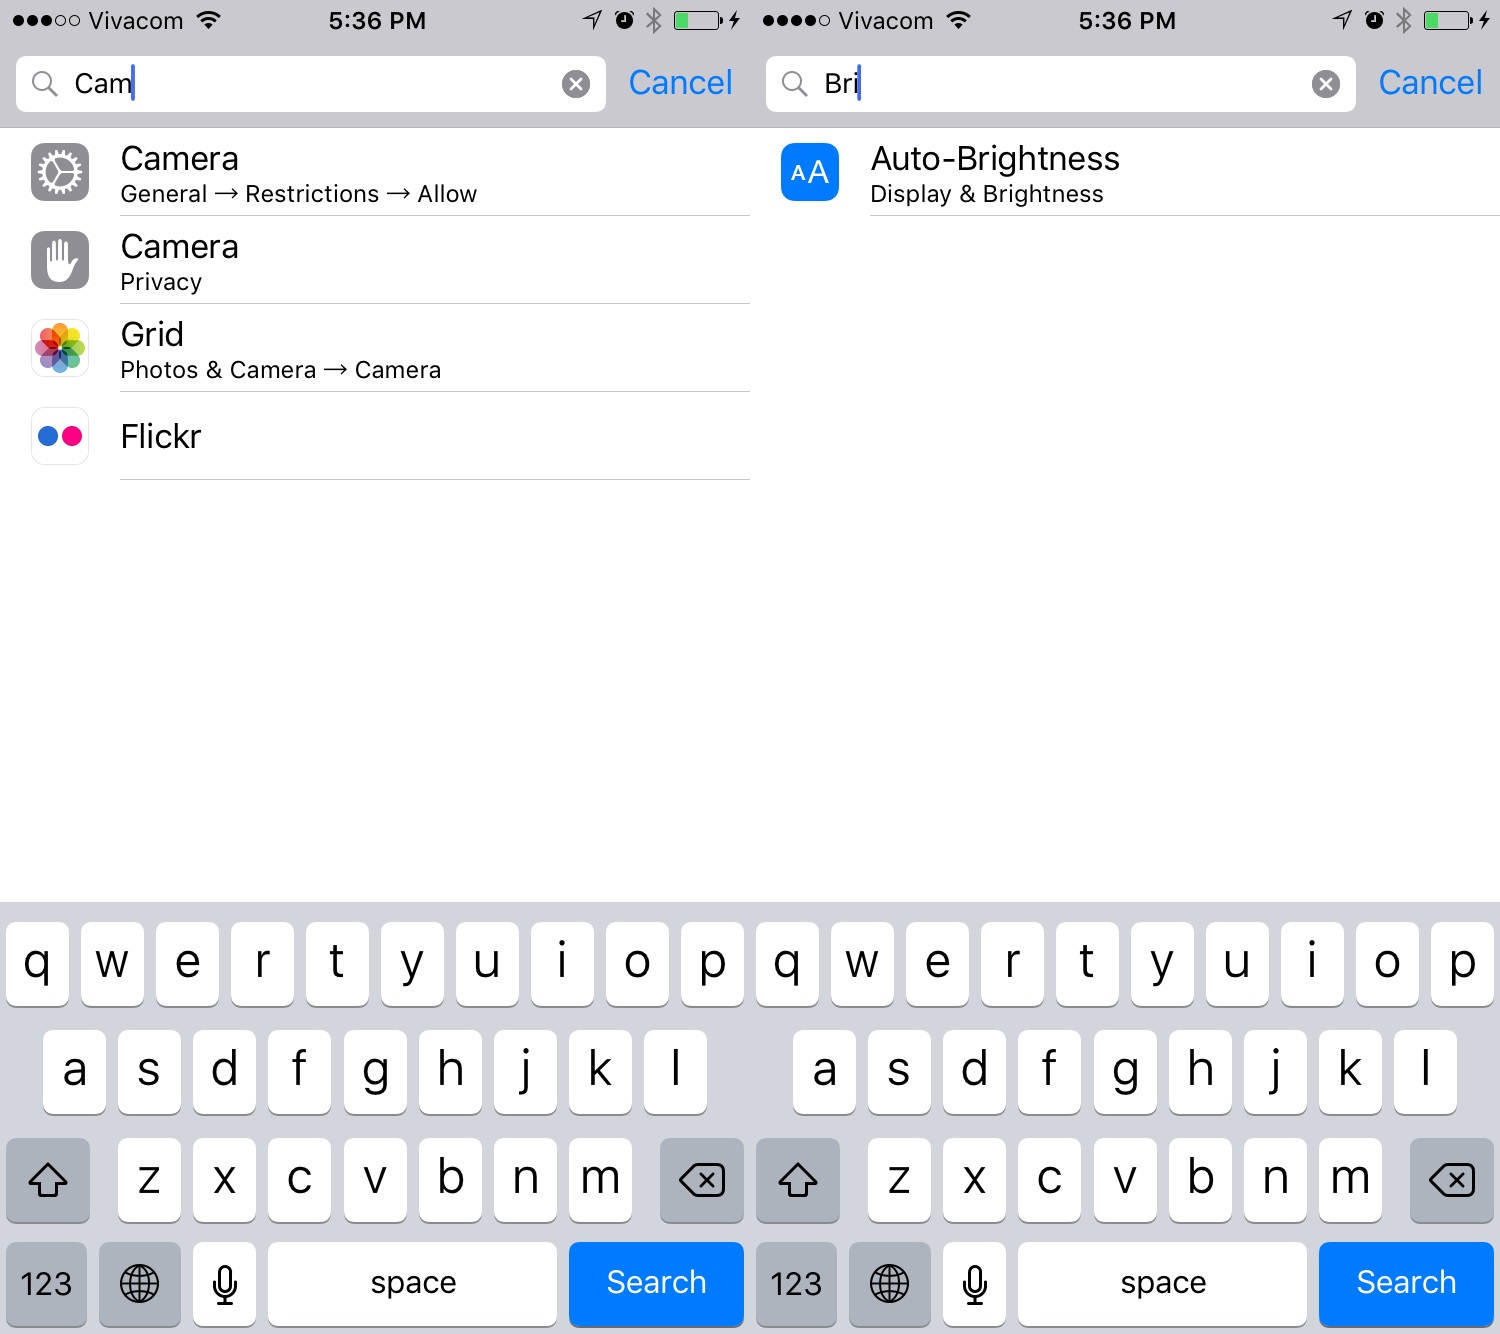 Settings-app-has-search-so-you-can-just-type-the-setting-that-you-are-looking-for